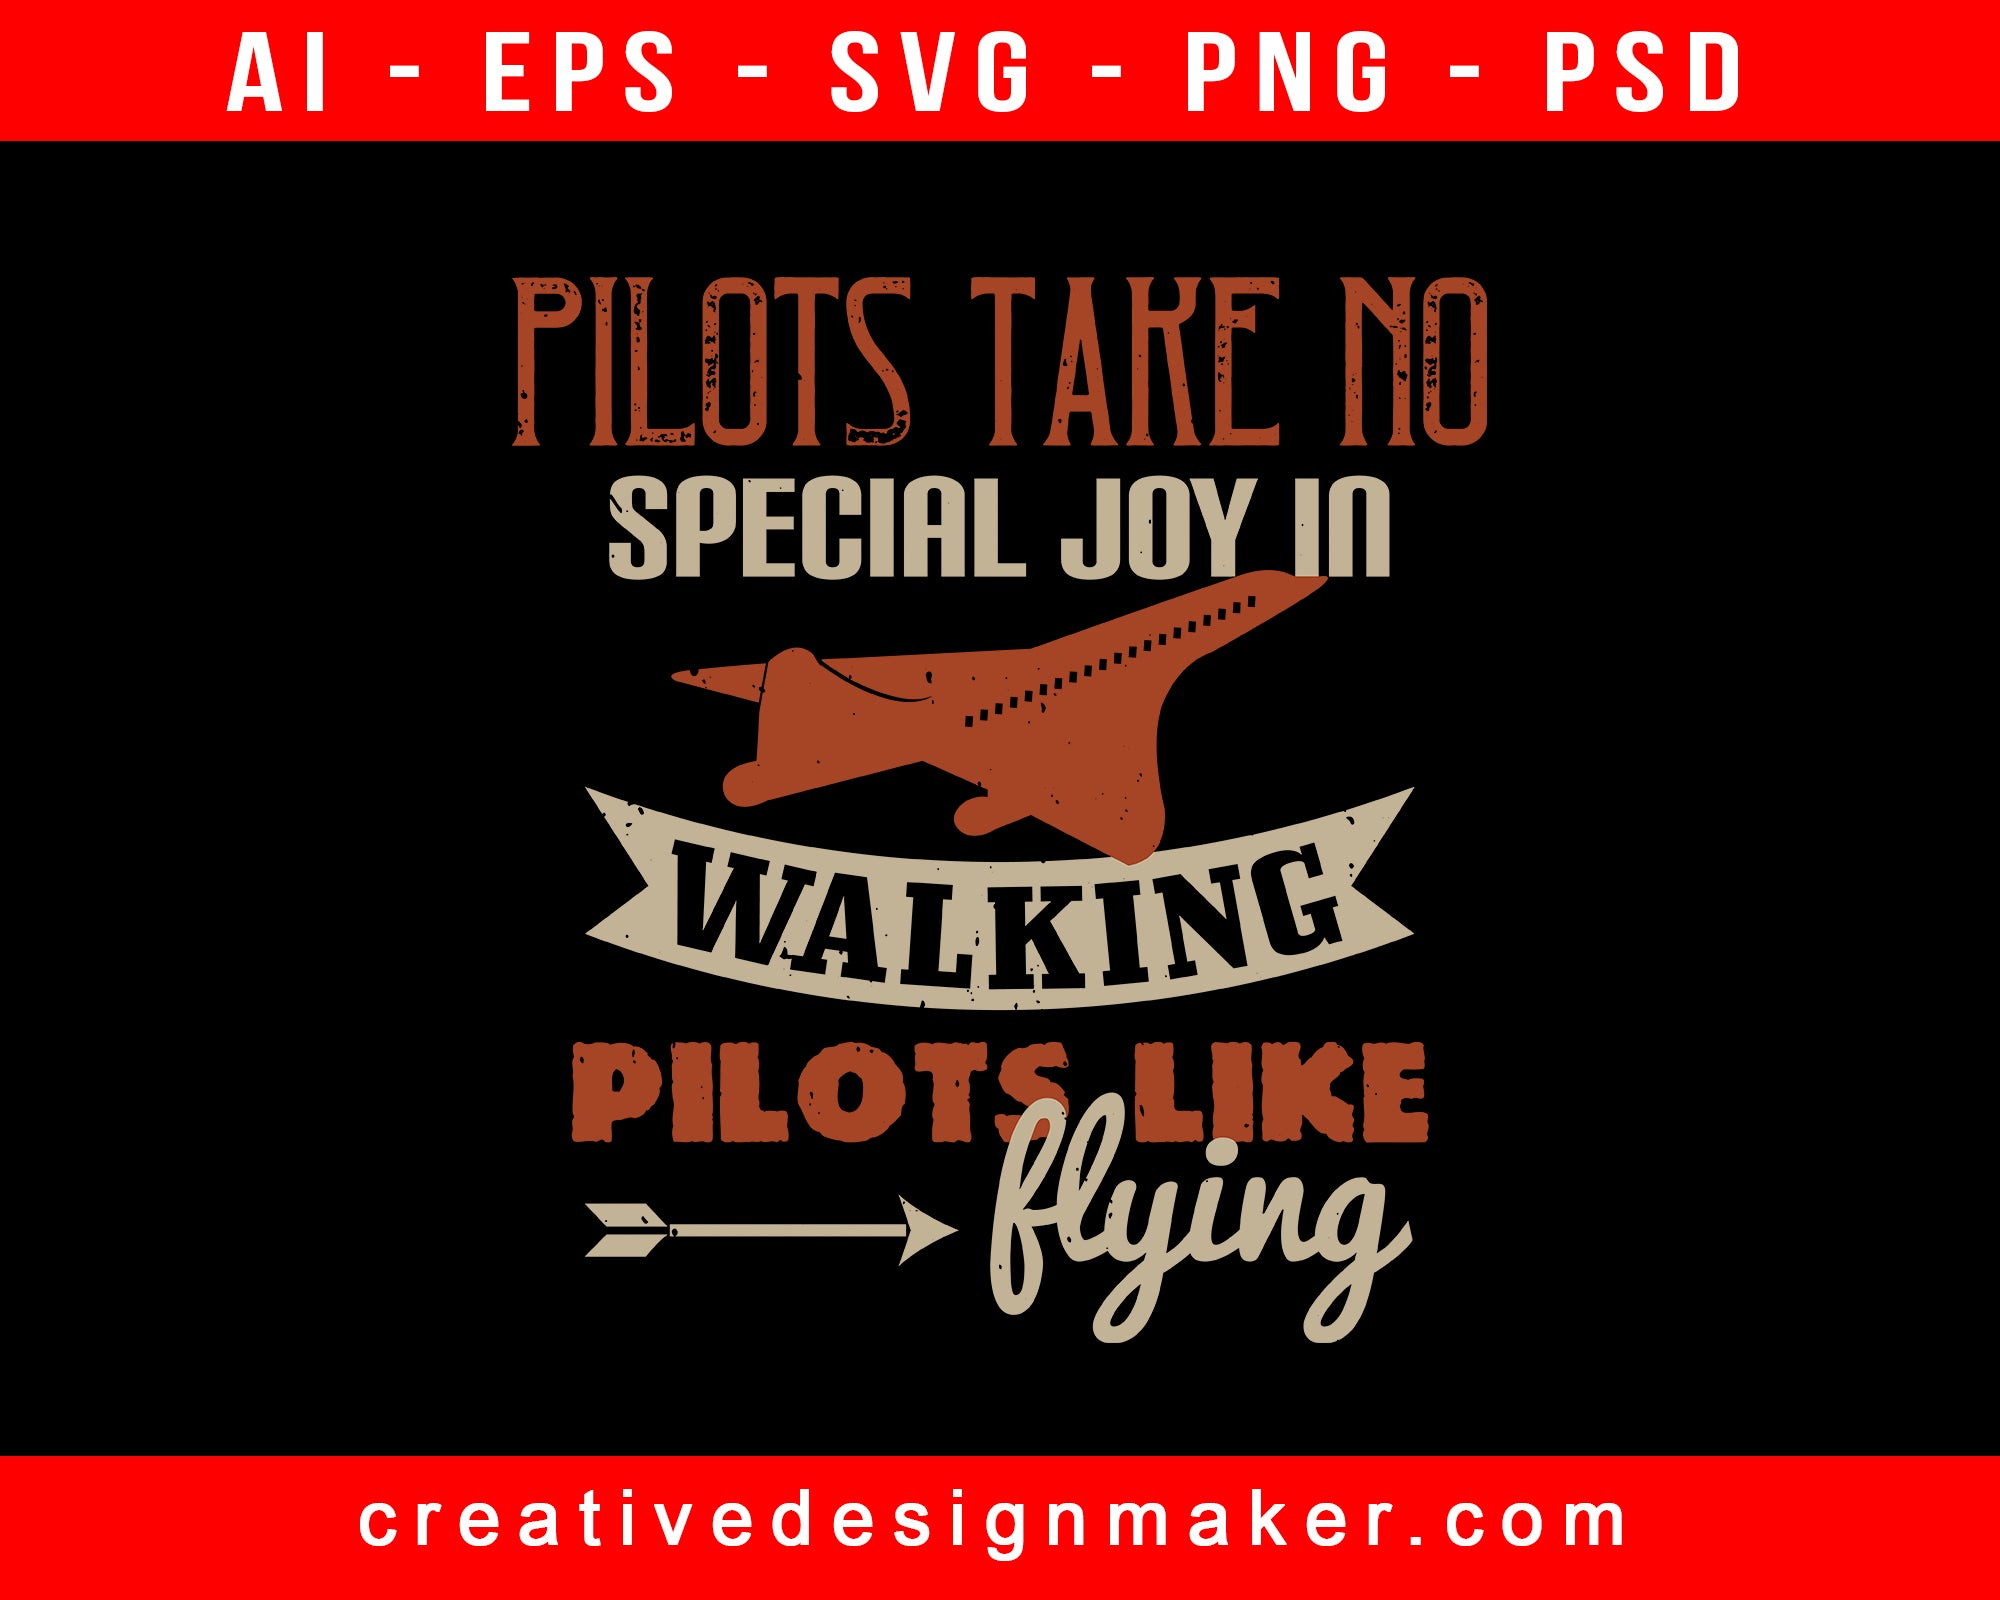 Pilots Take No Special Joy In Walking. Pilots Like Flying Aviation Print Ready Editable T-Shirt SVG Design!